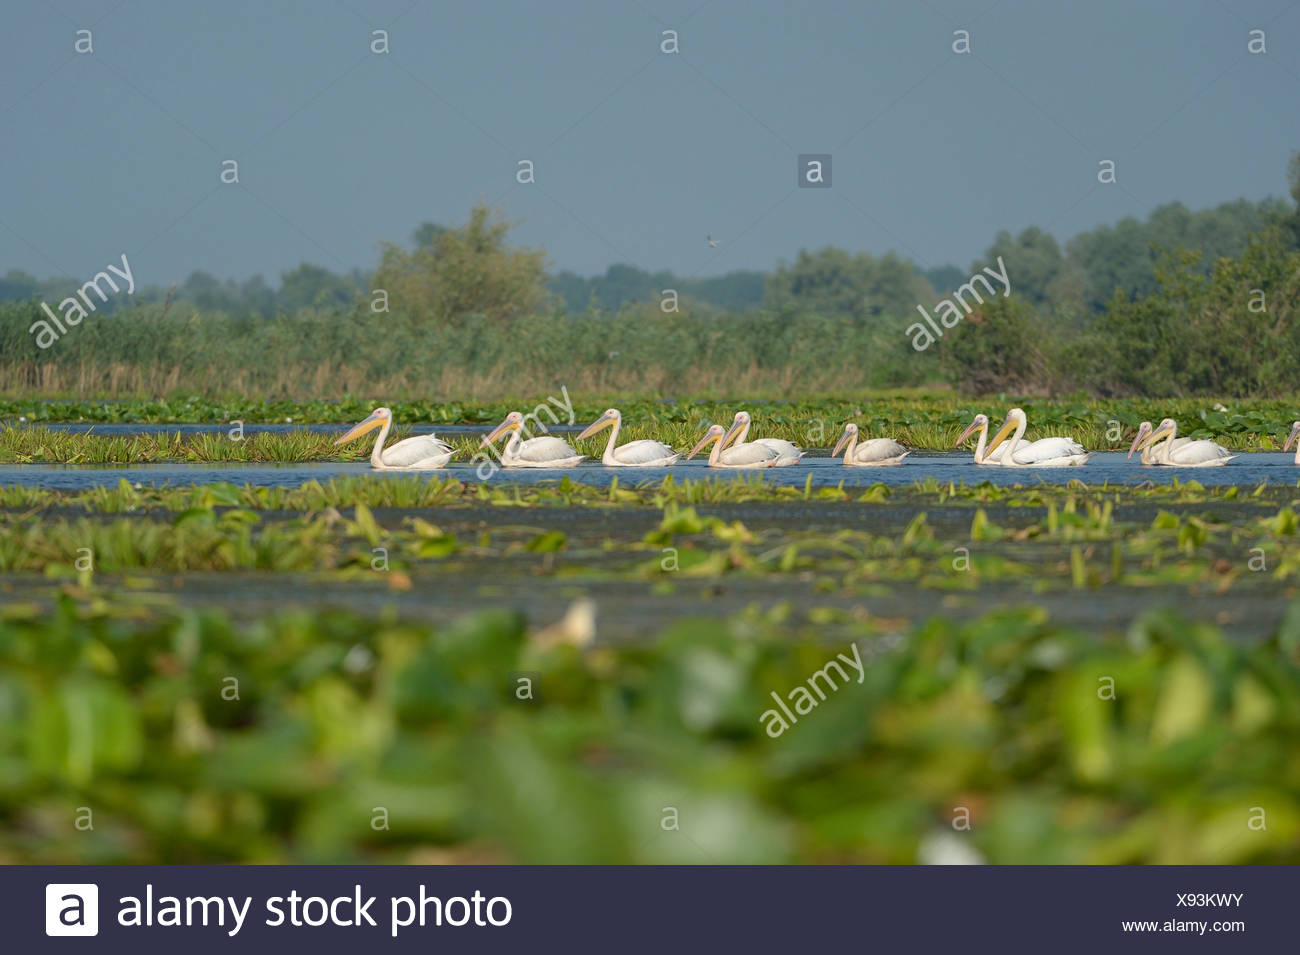 Great white pelicans (Pelecanus onocrotalus), Danube Delta, Murighiol, Romania, Europe Stock Photo